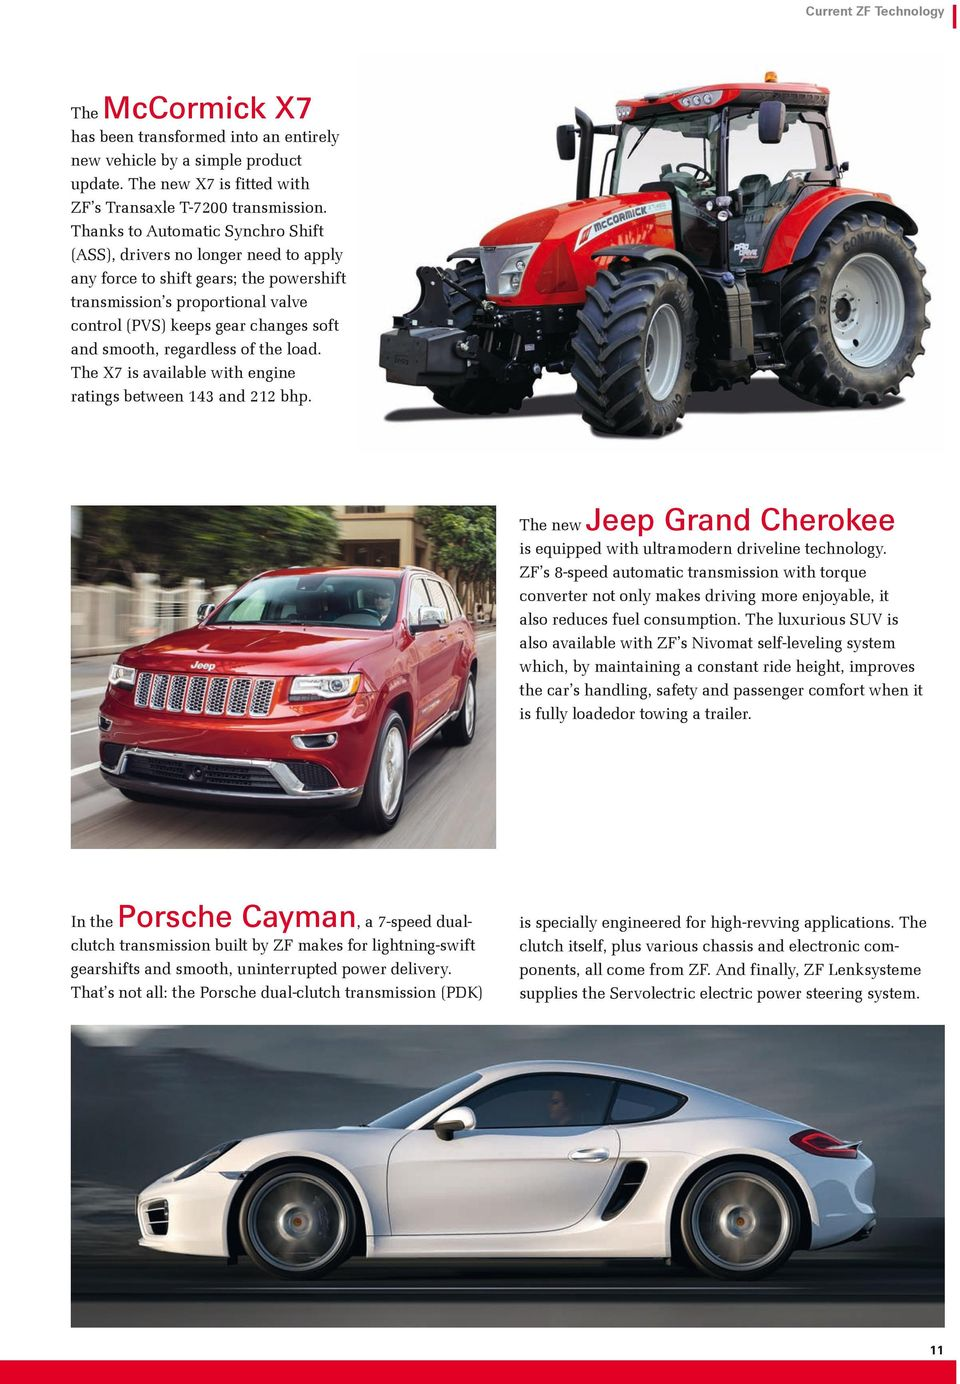 regardless of the load. The X7 is available with engine ratings between 143 and 212 bhp. The new Jeep Grand Cherokee is equipped with ultramodern driveline technology.